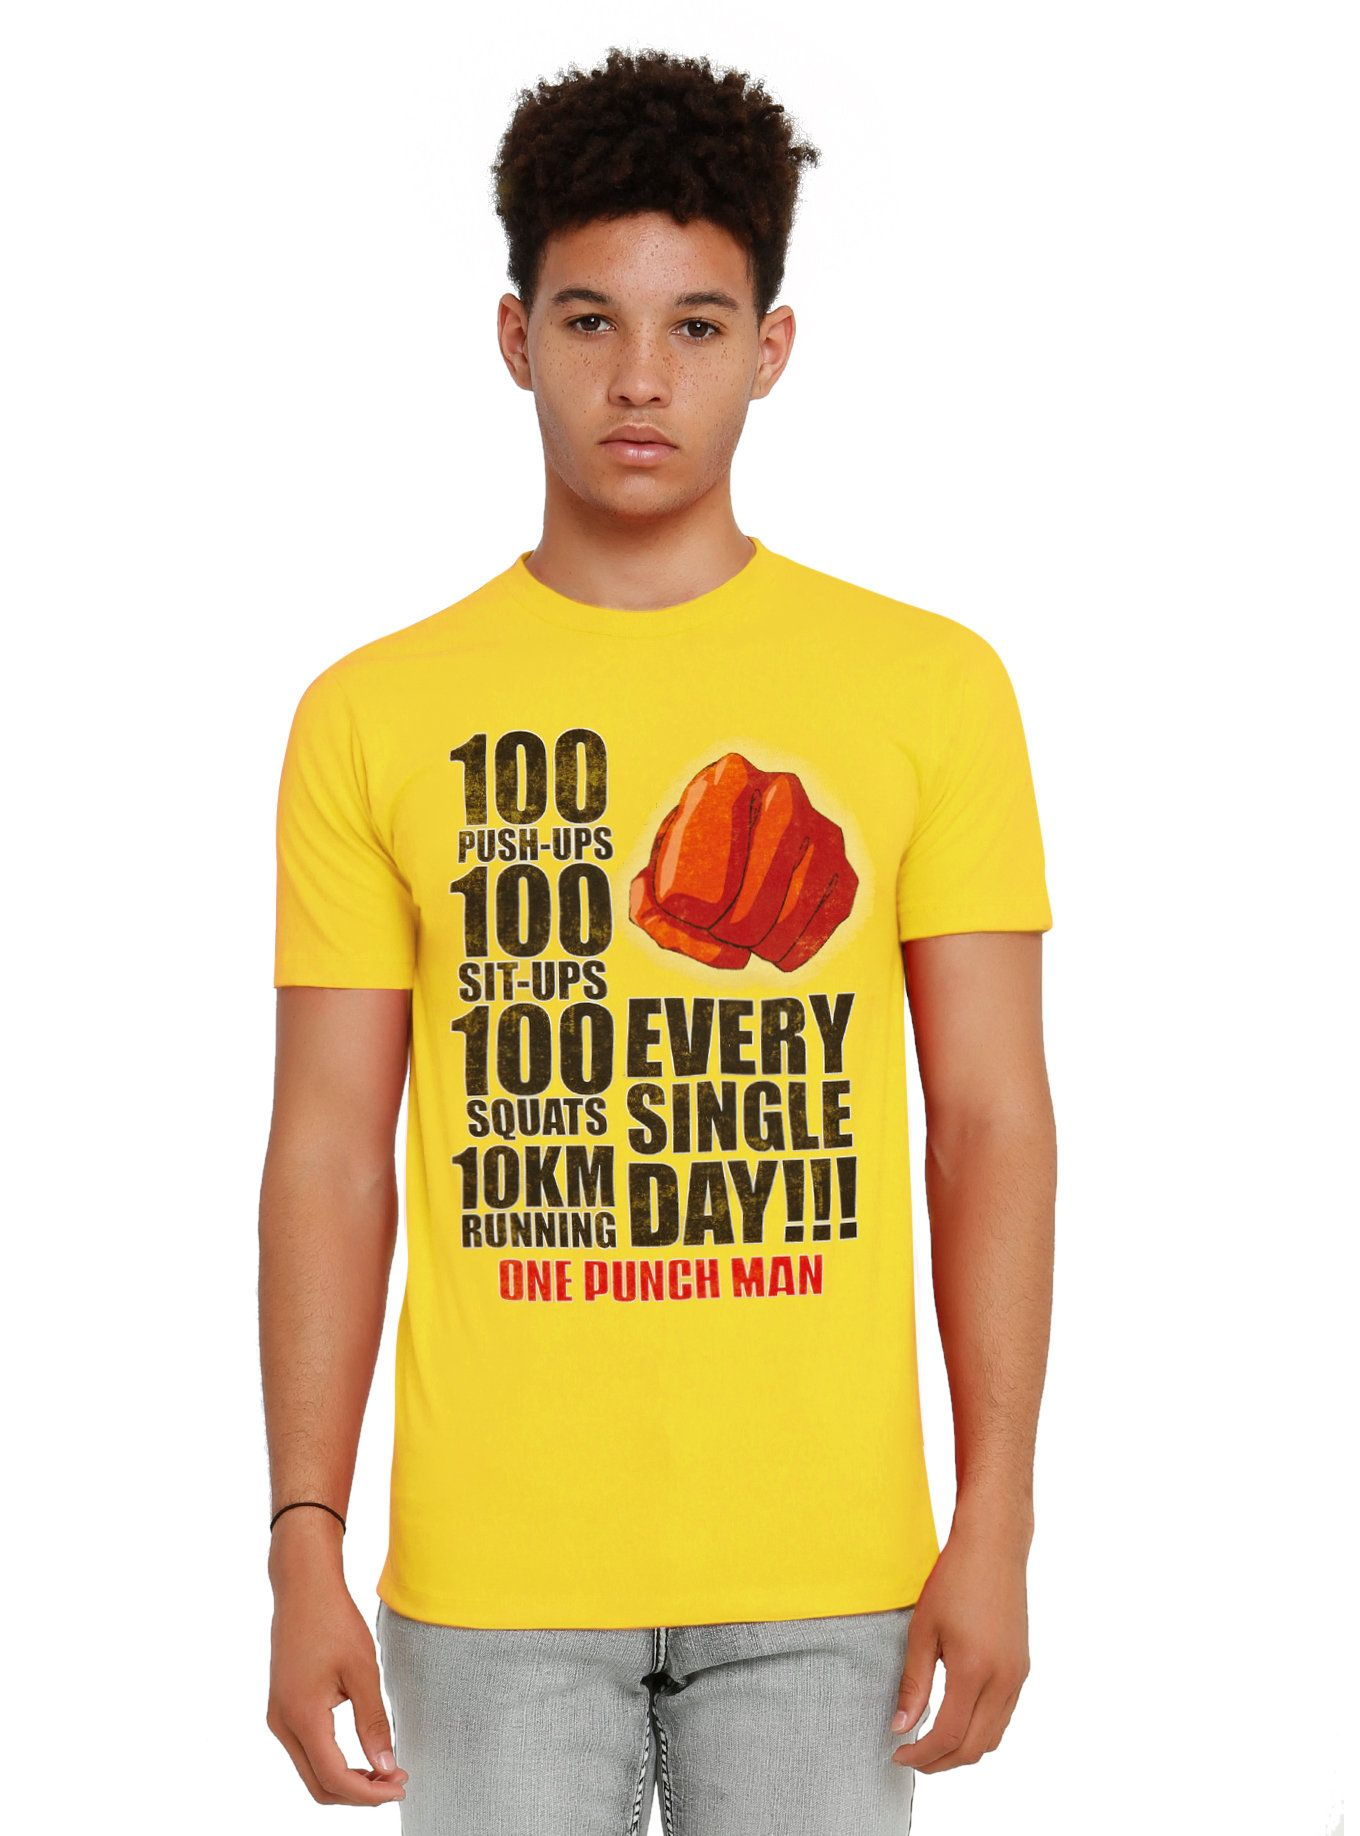 One Punch Man Workout T-Shirt   One punch man workout ...